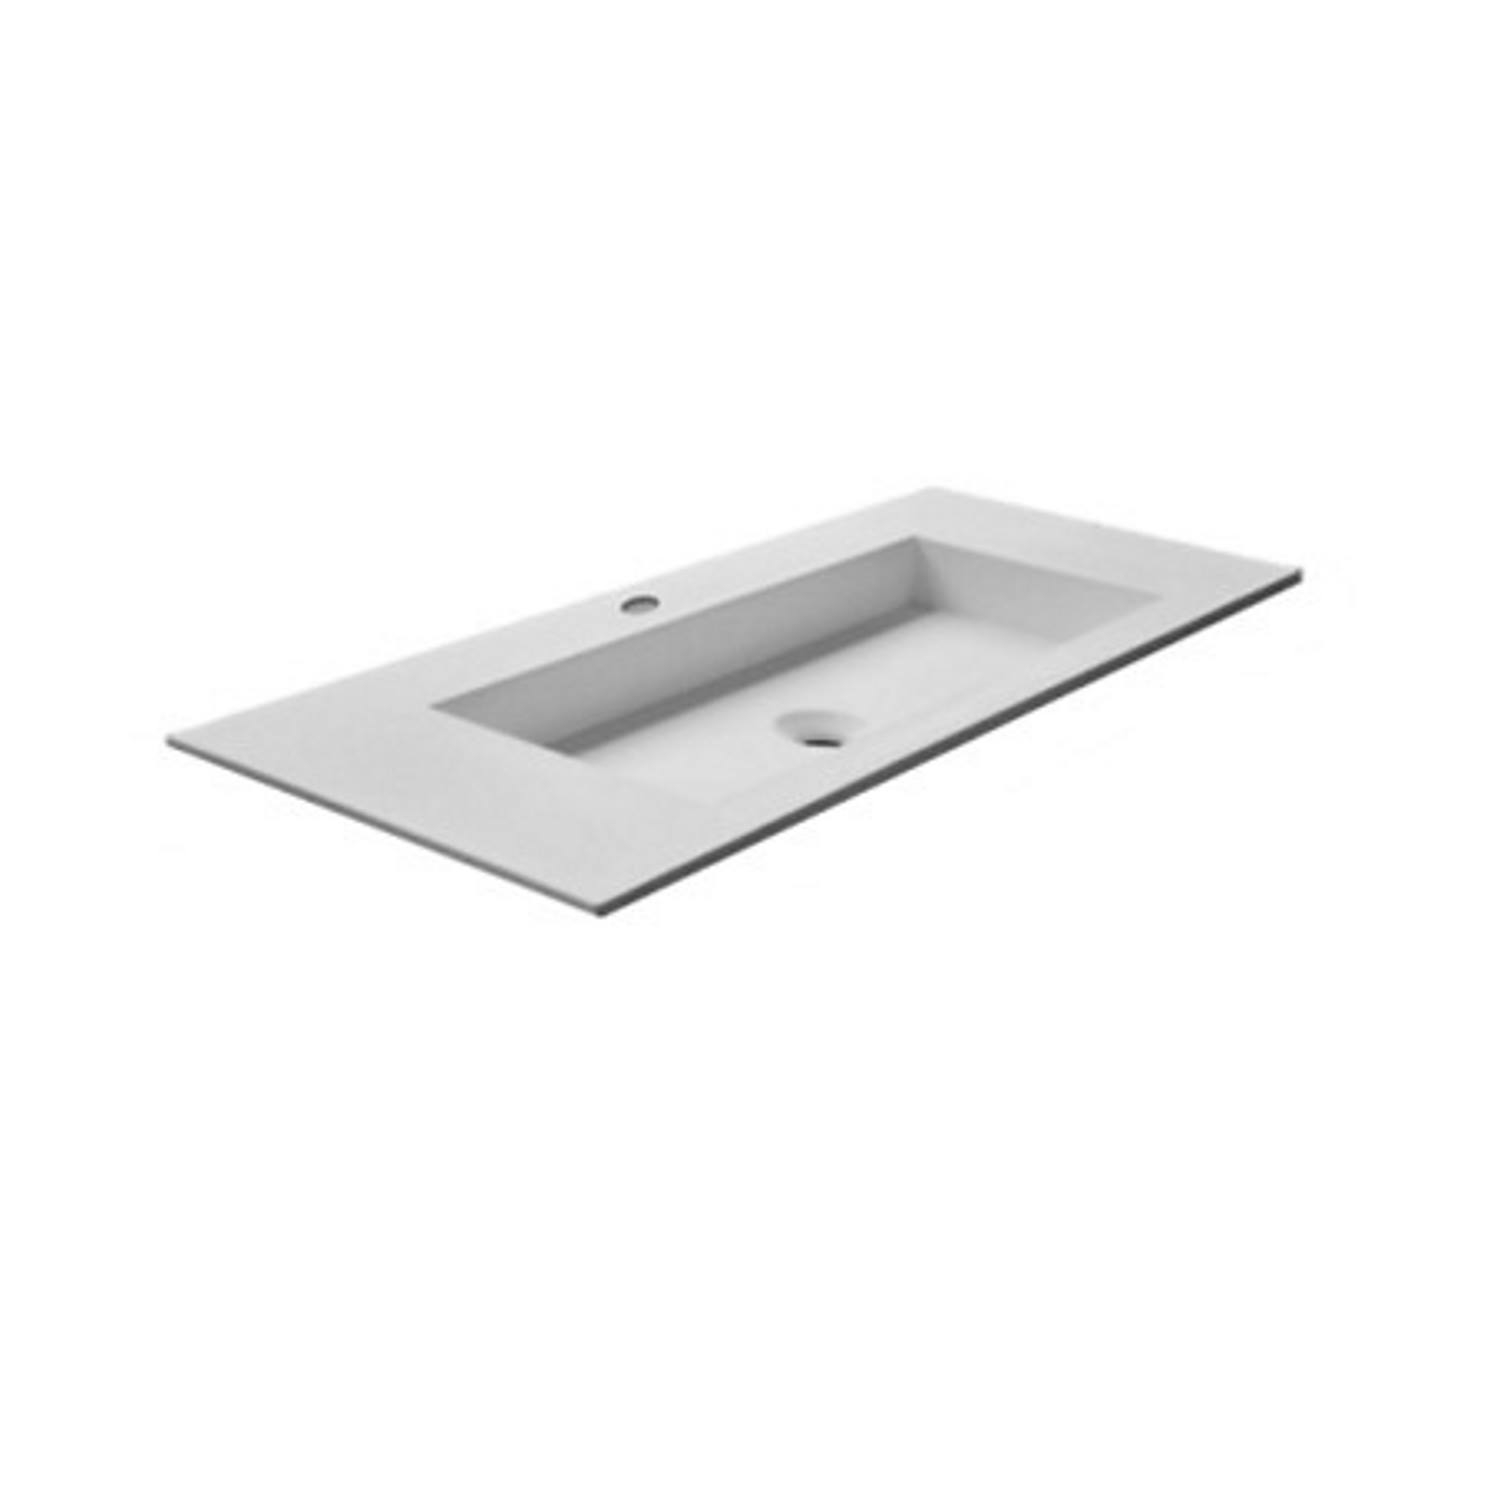 Wastafel Boss & Wessing 1 Kraangat 45.5x99 cm Solid Surface Wit